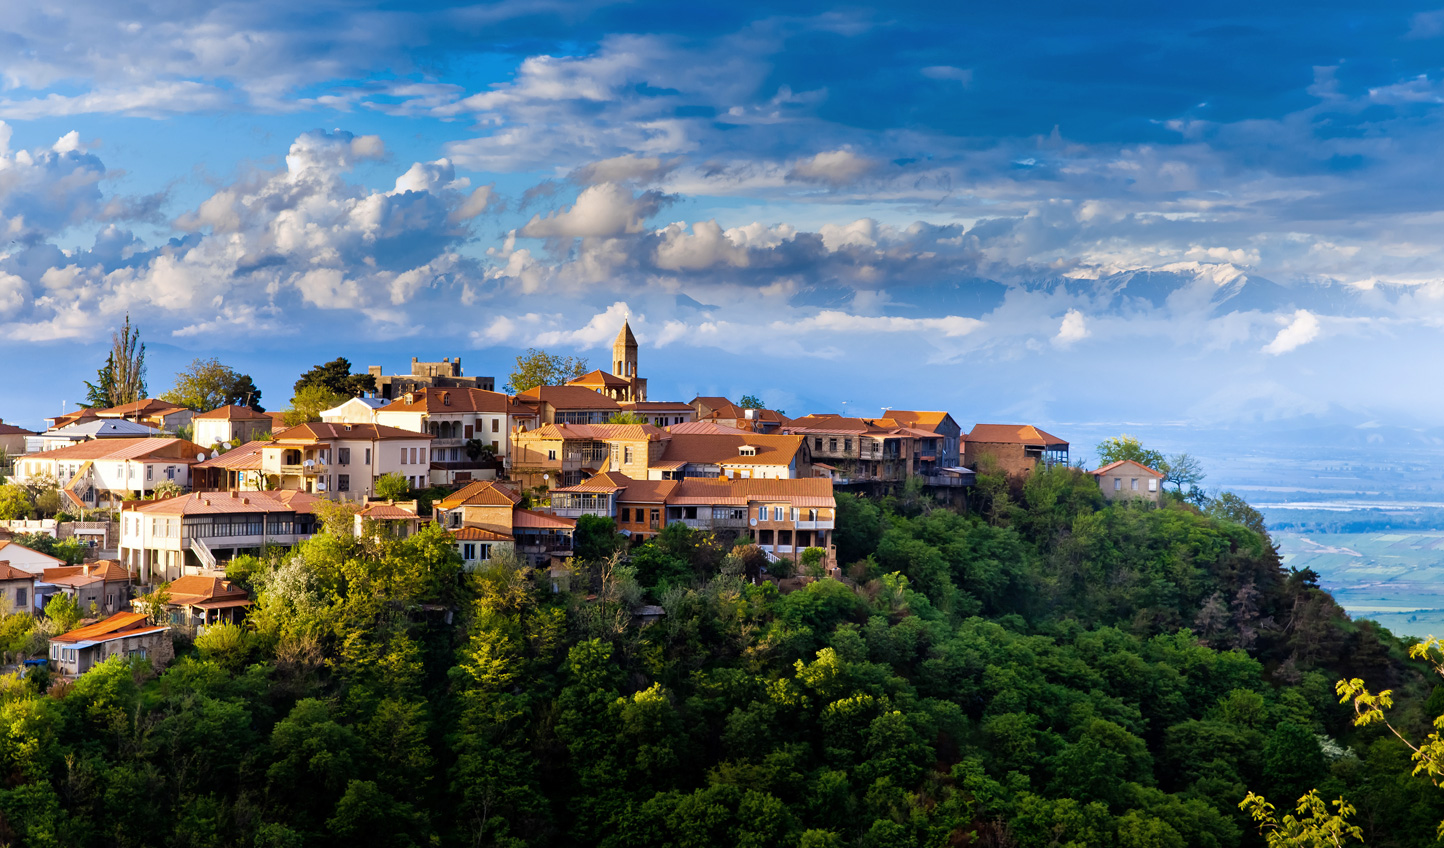 Discover hilltop towns and vineyard-rich valleys in Georgia